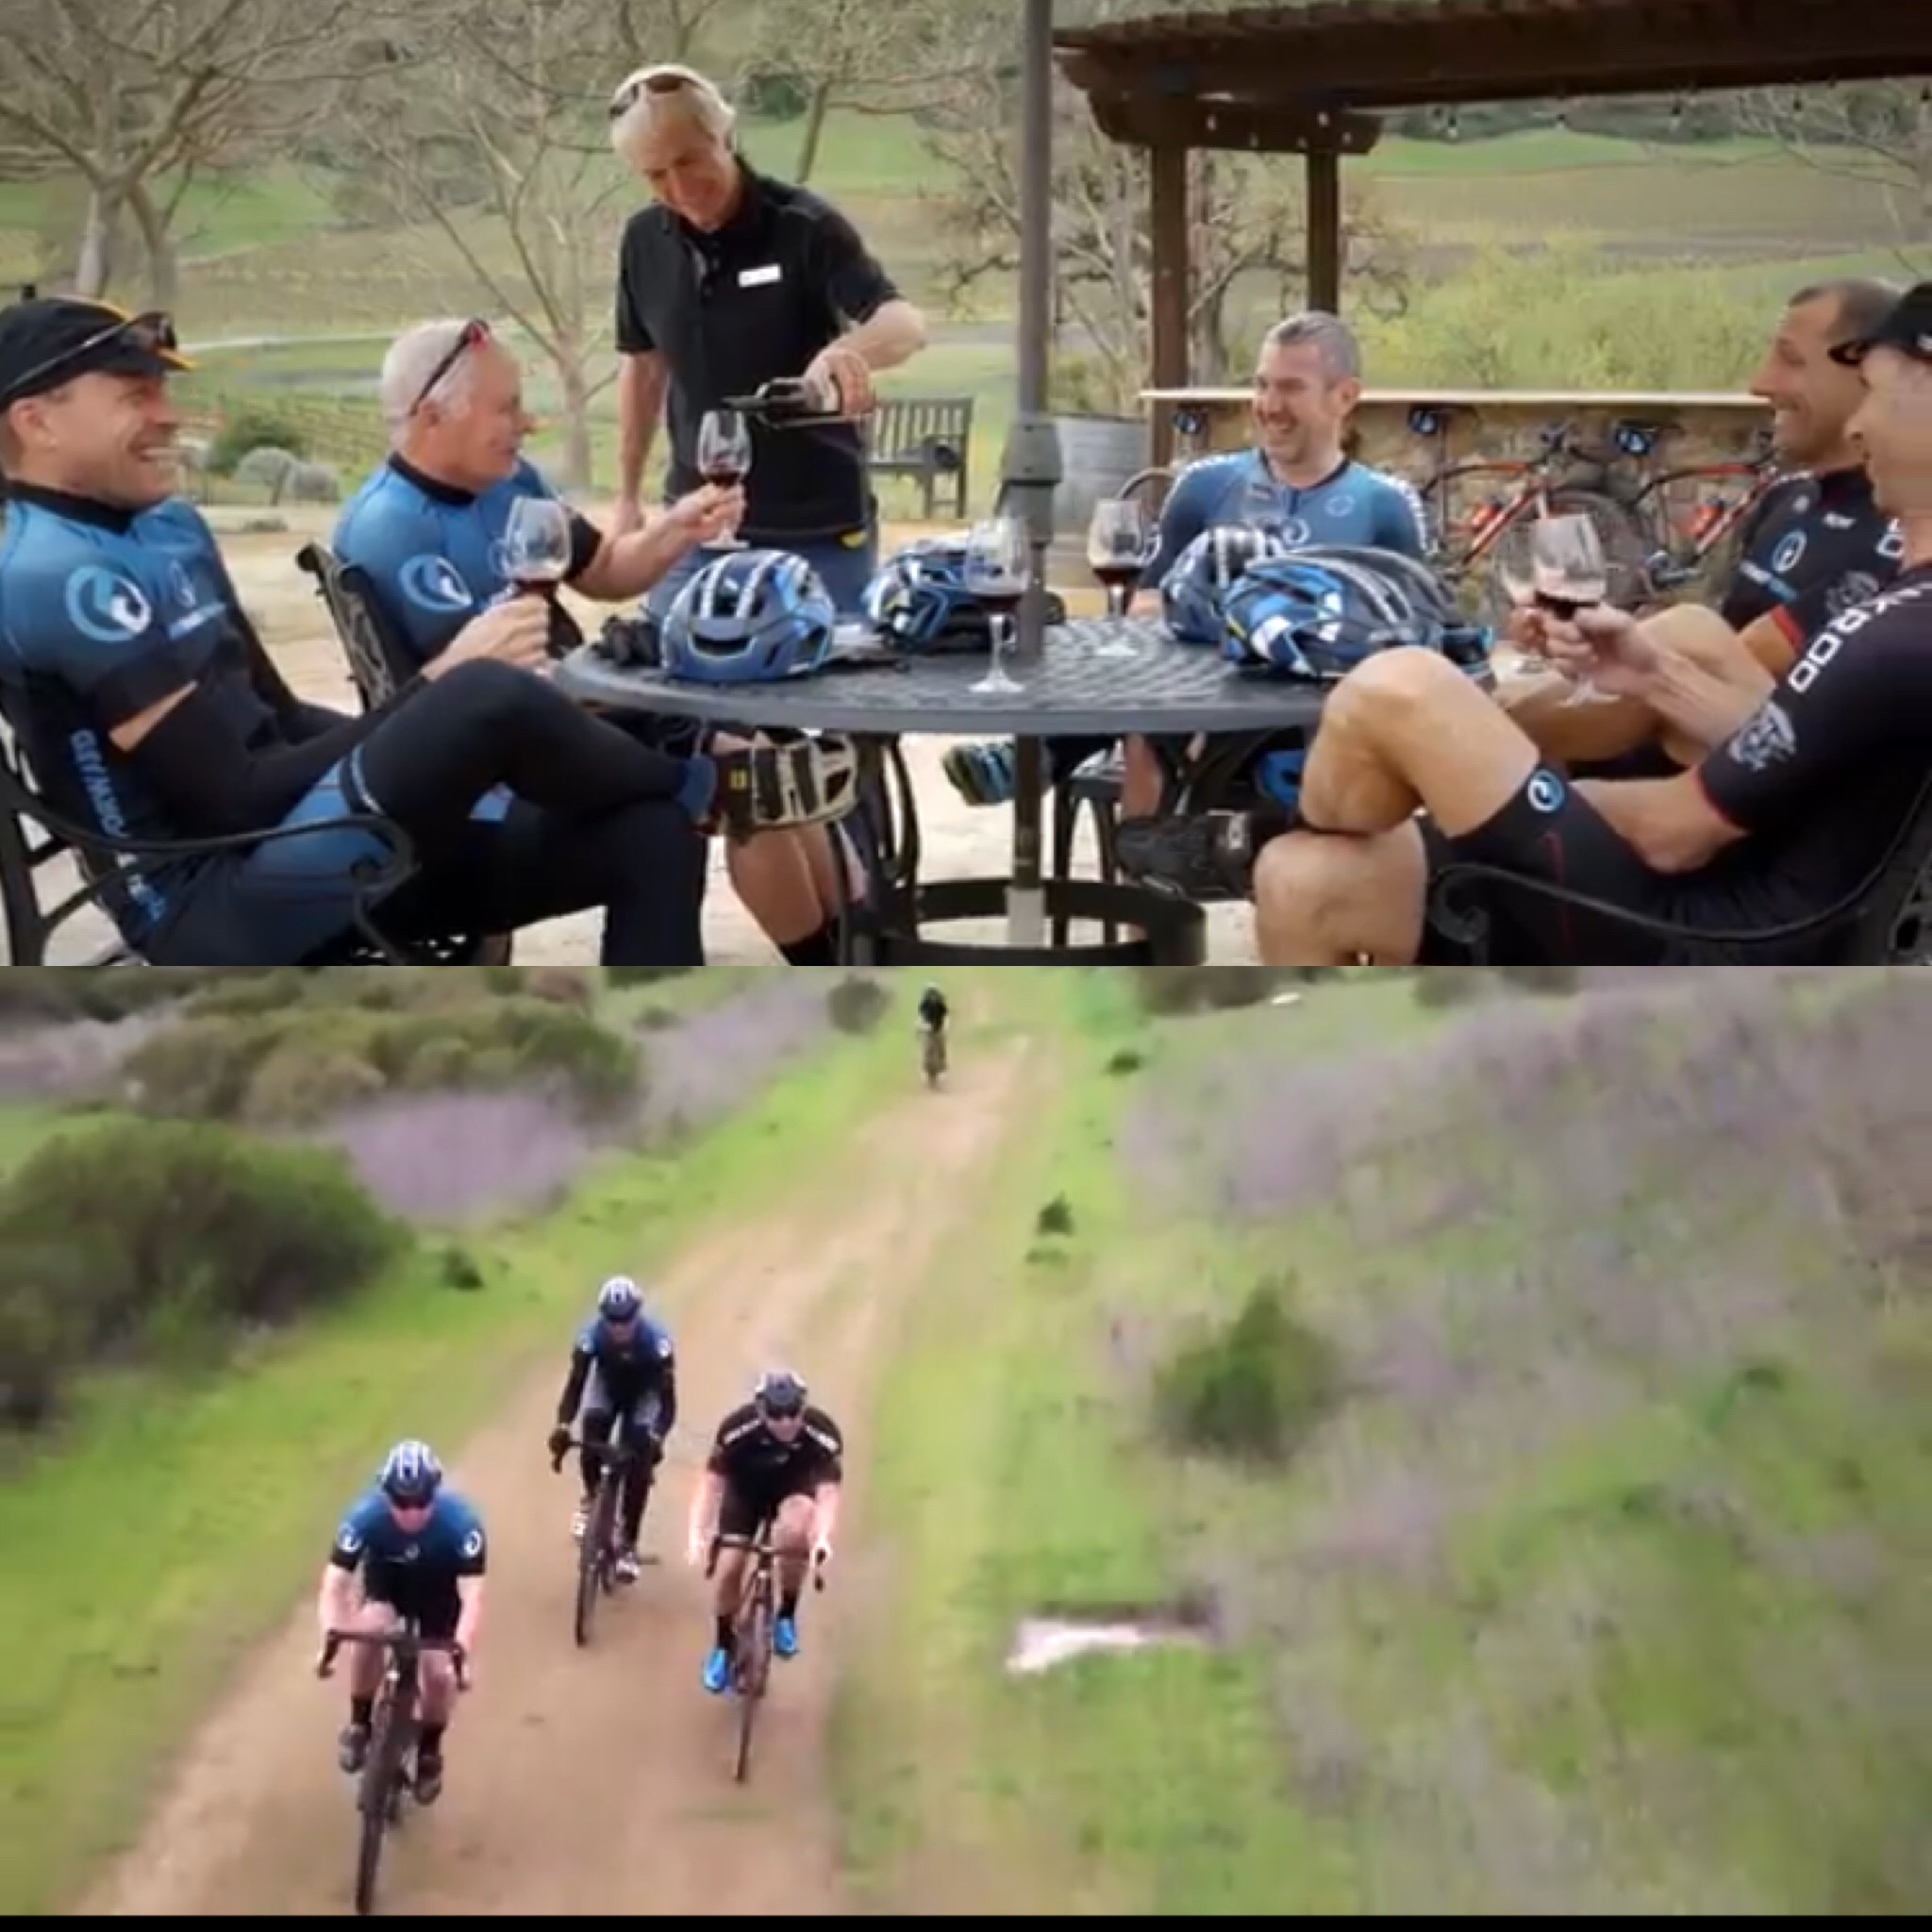 The team doing what it knows best. Having fun and riding hard!